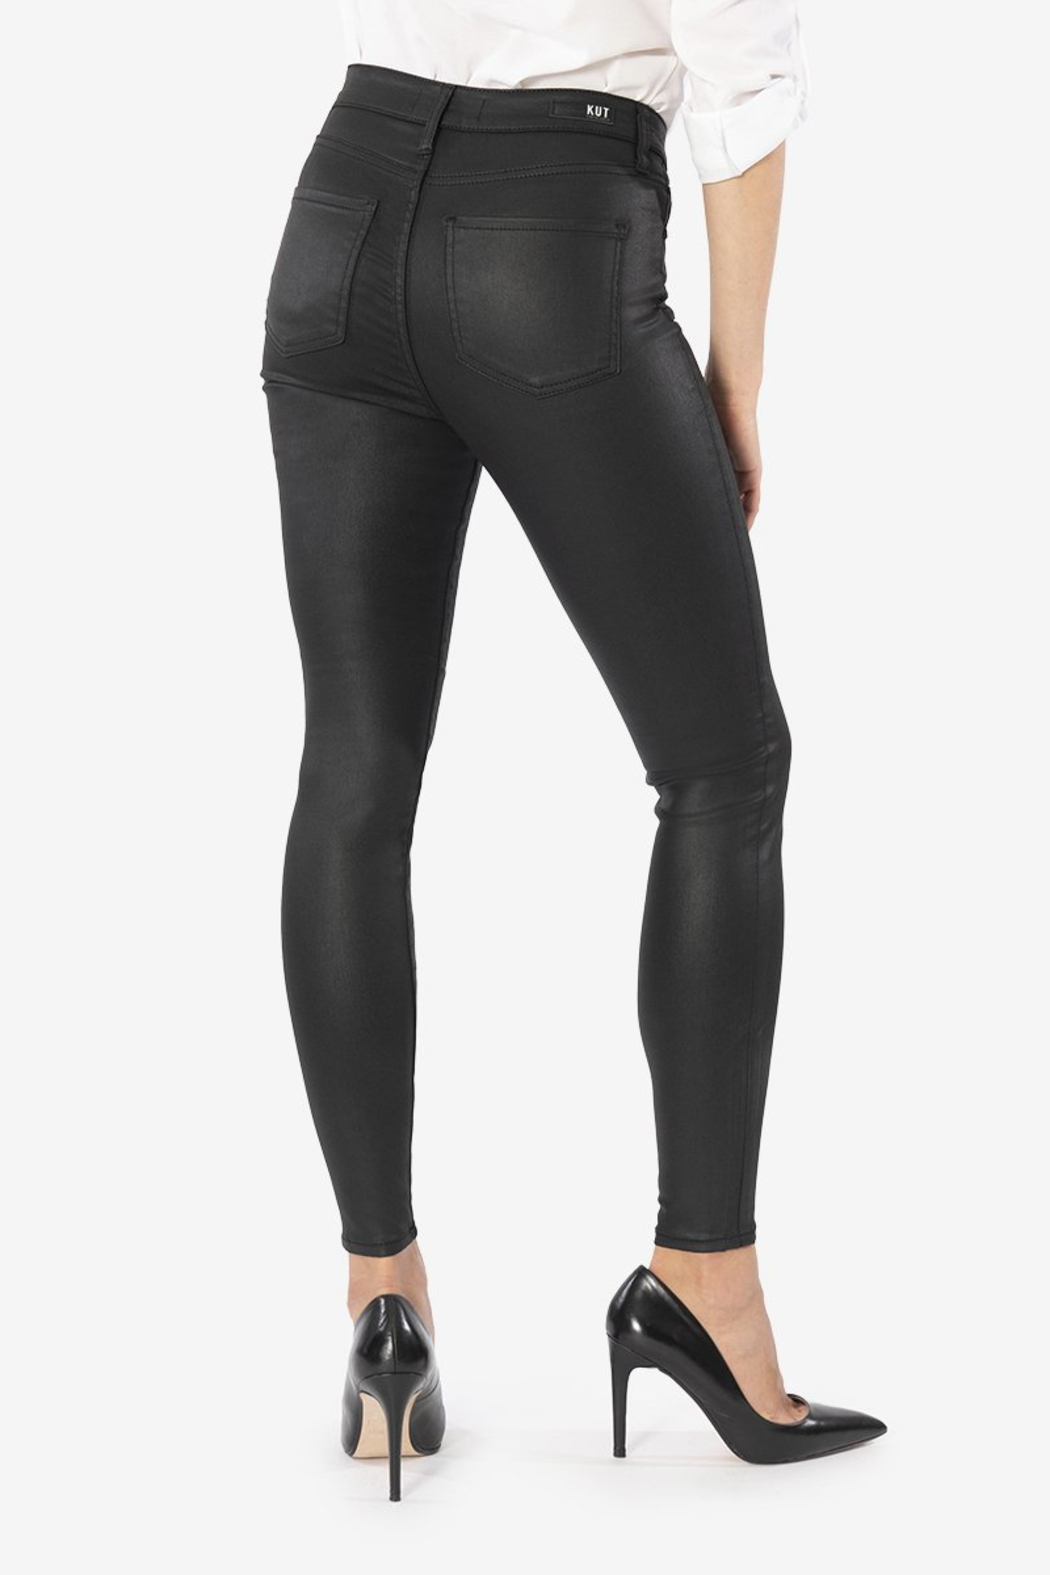 Kut from the Kloth Mia H/R Pleather Skinny - Side Cropped Image